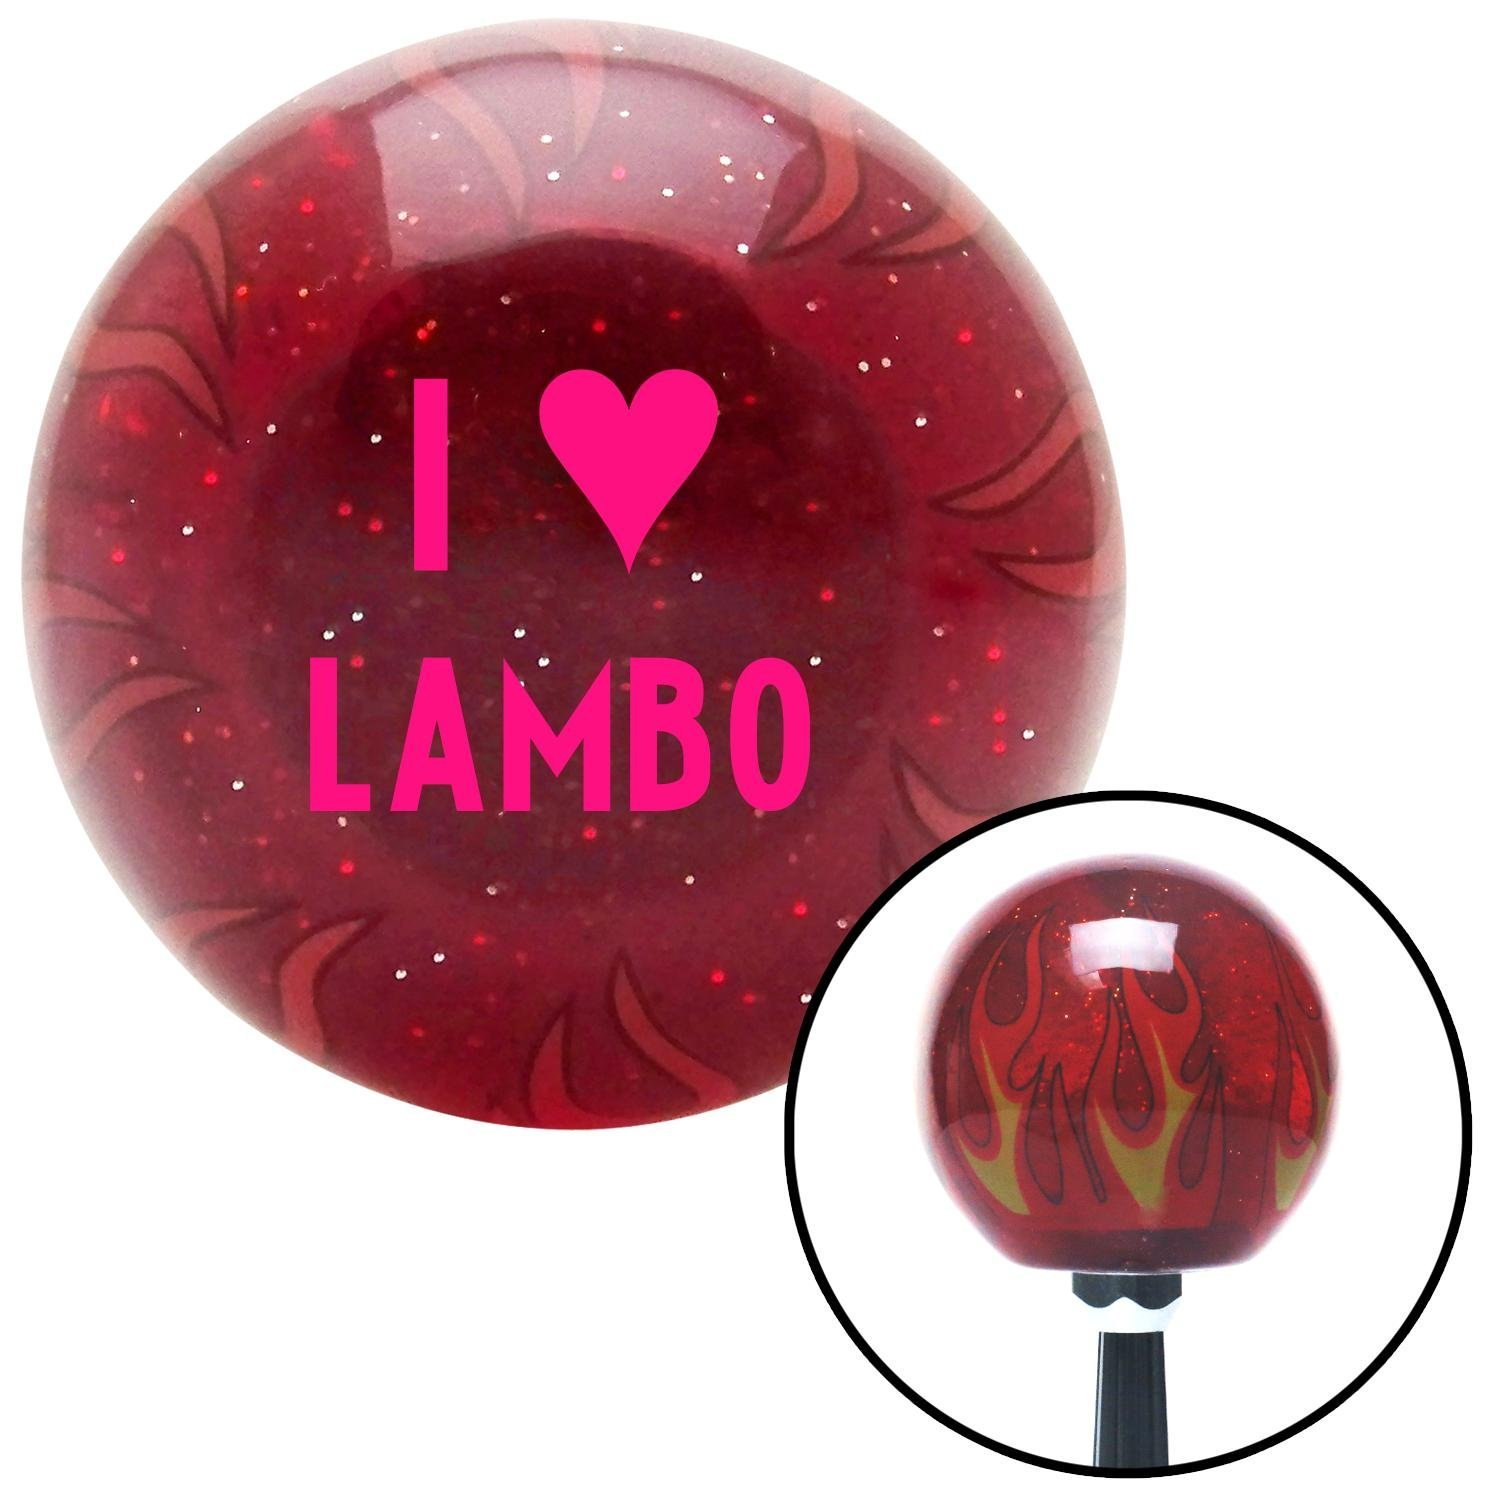 American Shifter 237349 Red Flame Metal Flake Shift Knob with M16 x 1.5 Insert Pink I 3 Lambo